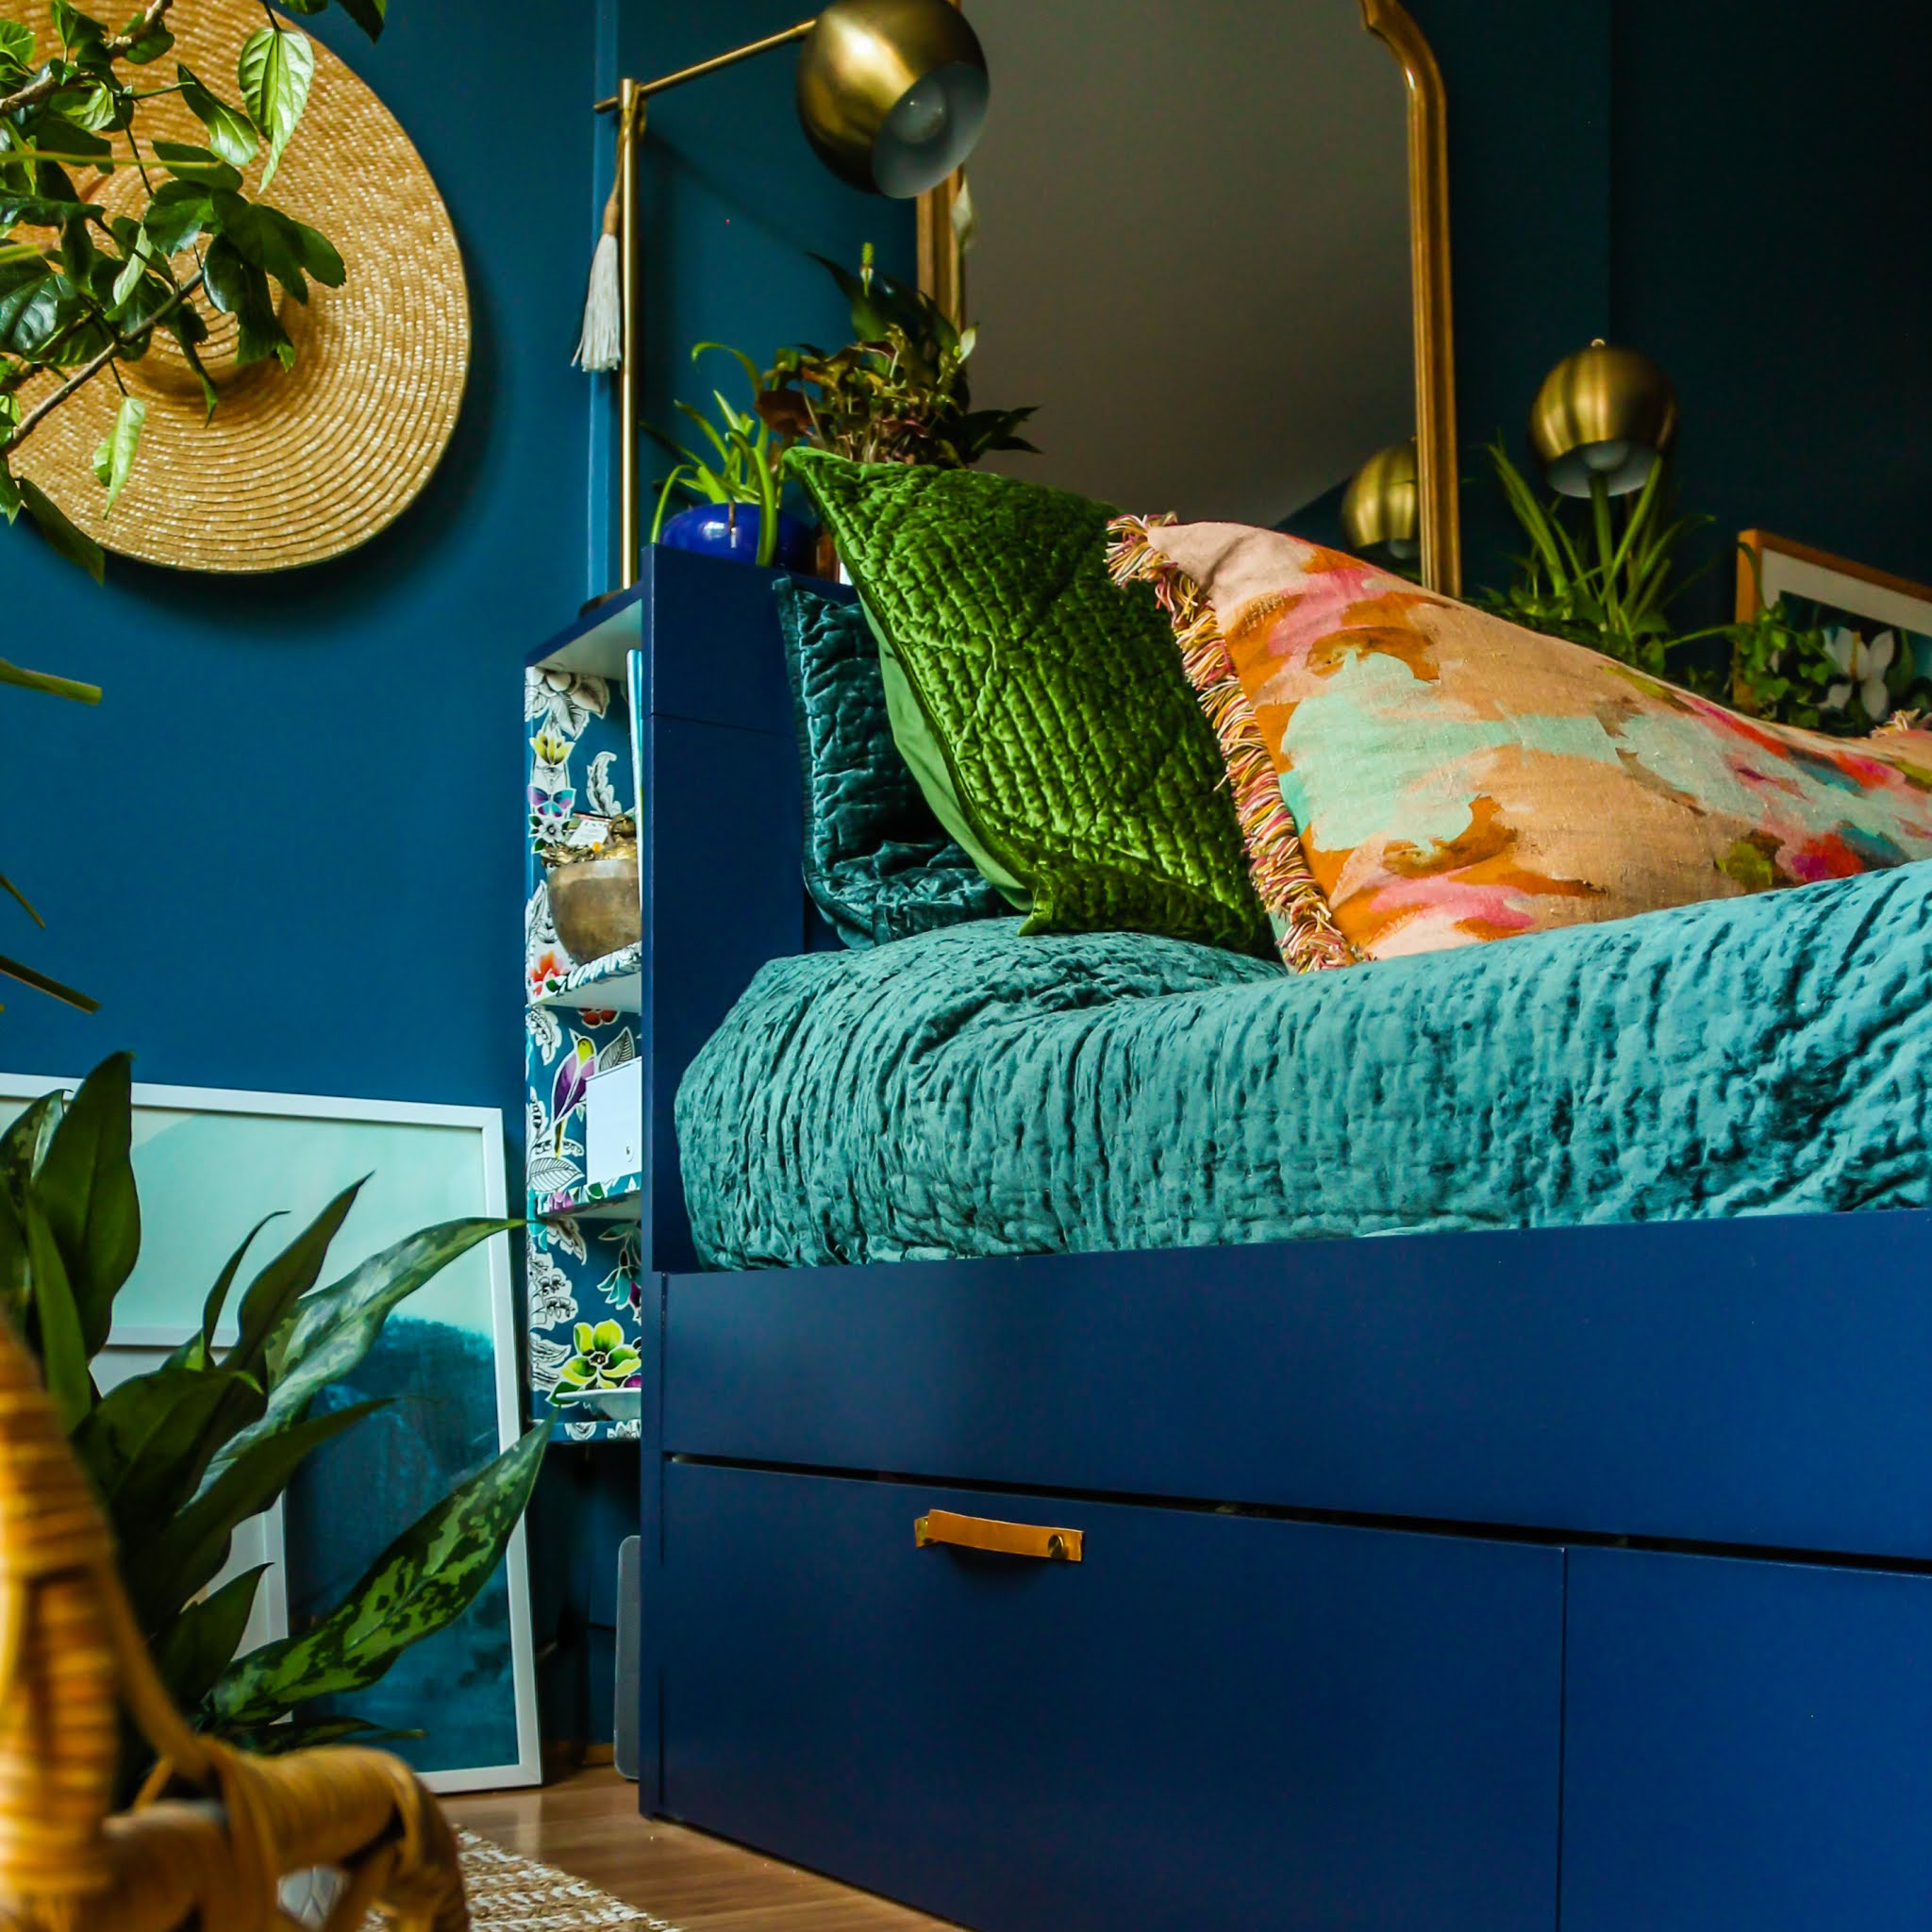 Blue bedroom // ikea brimnes // Clare paint deep dive // clare paint goodnight moon // Annie Selke bedding // jewel tone bedroom // colorful bedroom // moody bedrooms